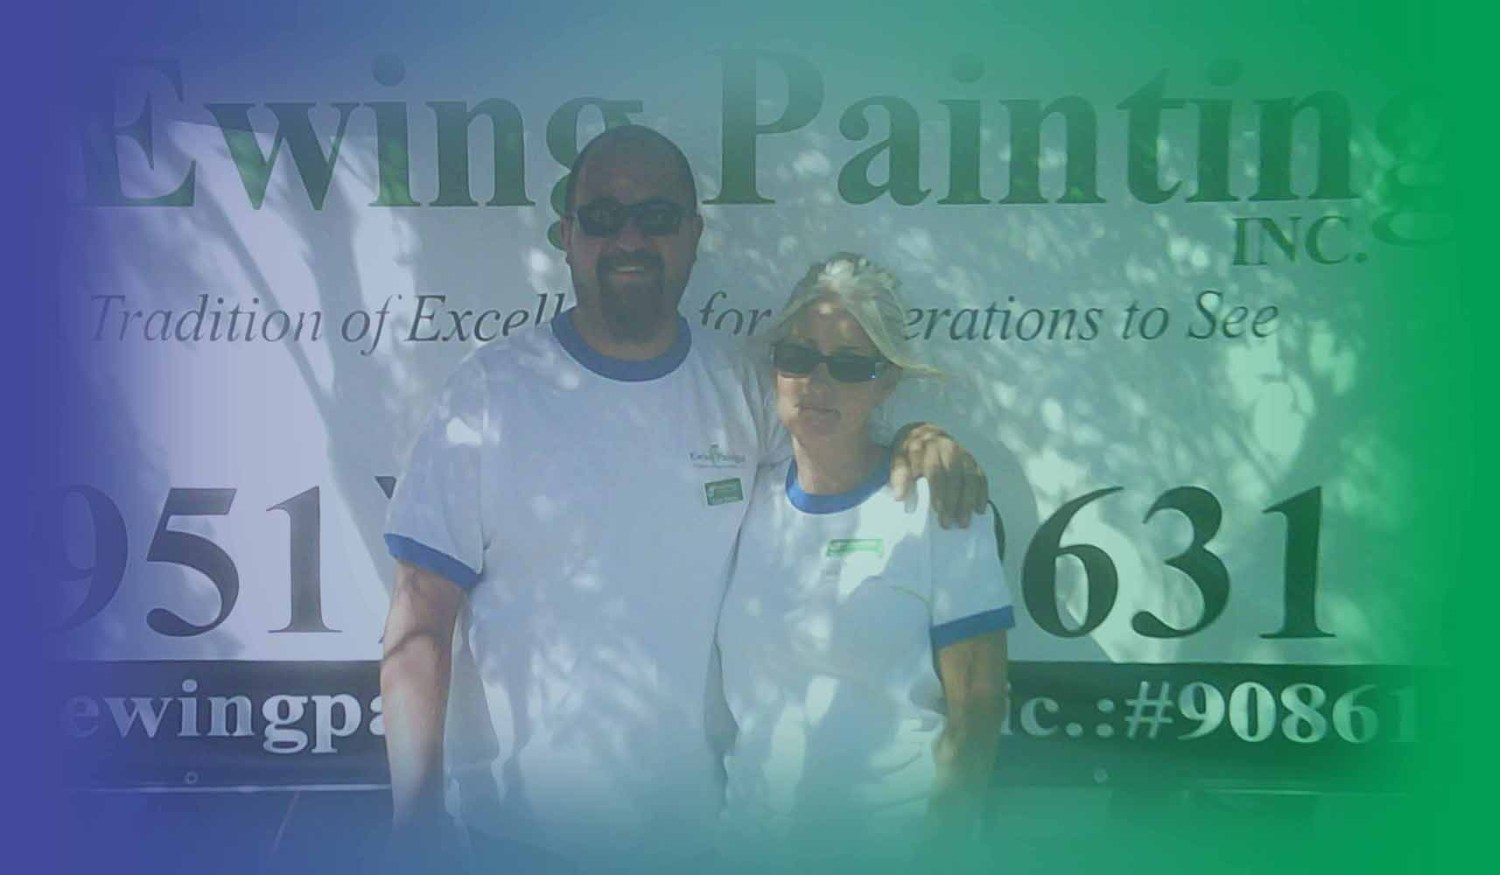 Ewing Painting Beaumont